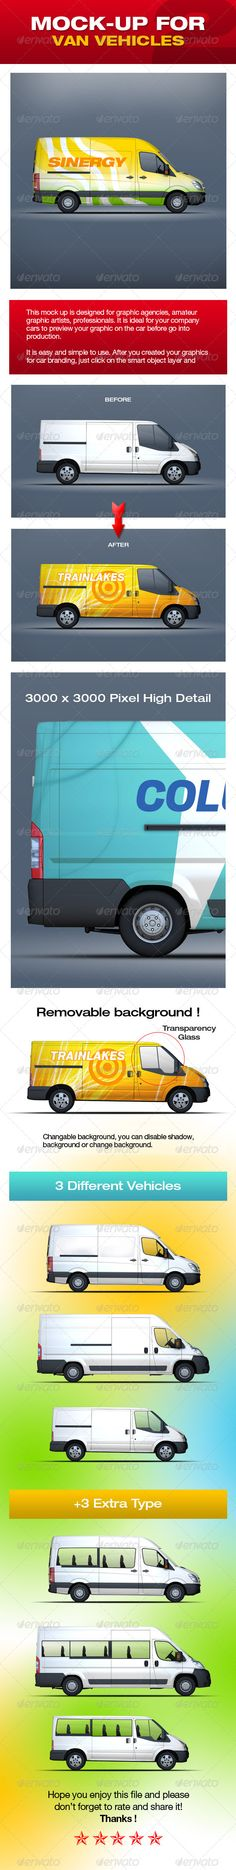 Mock-Up For Van Vehicles V2 #GraphicRiver This mock up is designed for graphic agencies, amateur graphic artists, professionals. It is ideal for your company cars to preview your graphic on the vehicle before go into production. It is easy and simple to use. After you created your graphics for vehicle branding, just click on the smart object layer and replace the current image with your work to preview how it looks on the vehicle. Changable background, you can disable shadow, background or…